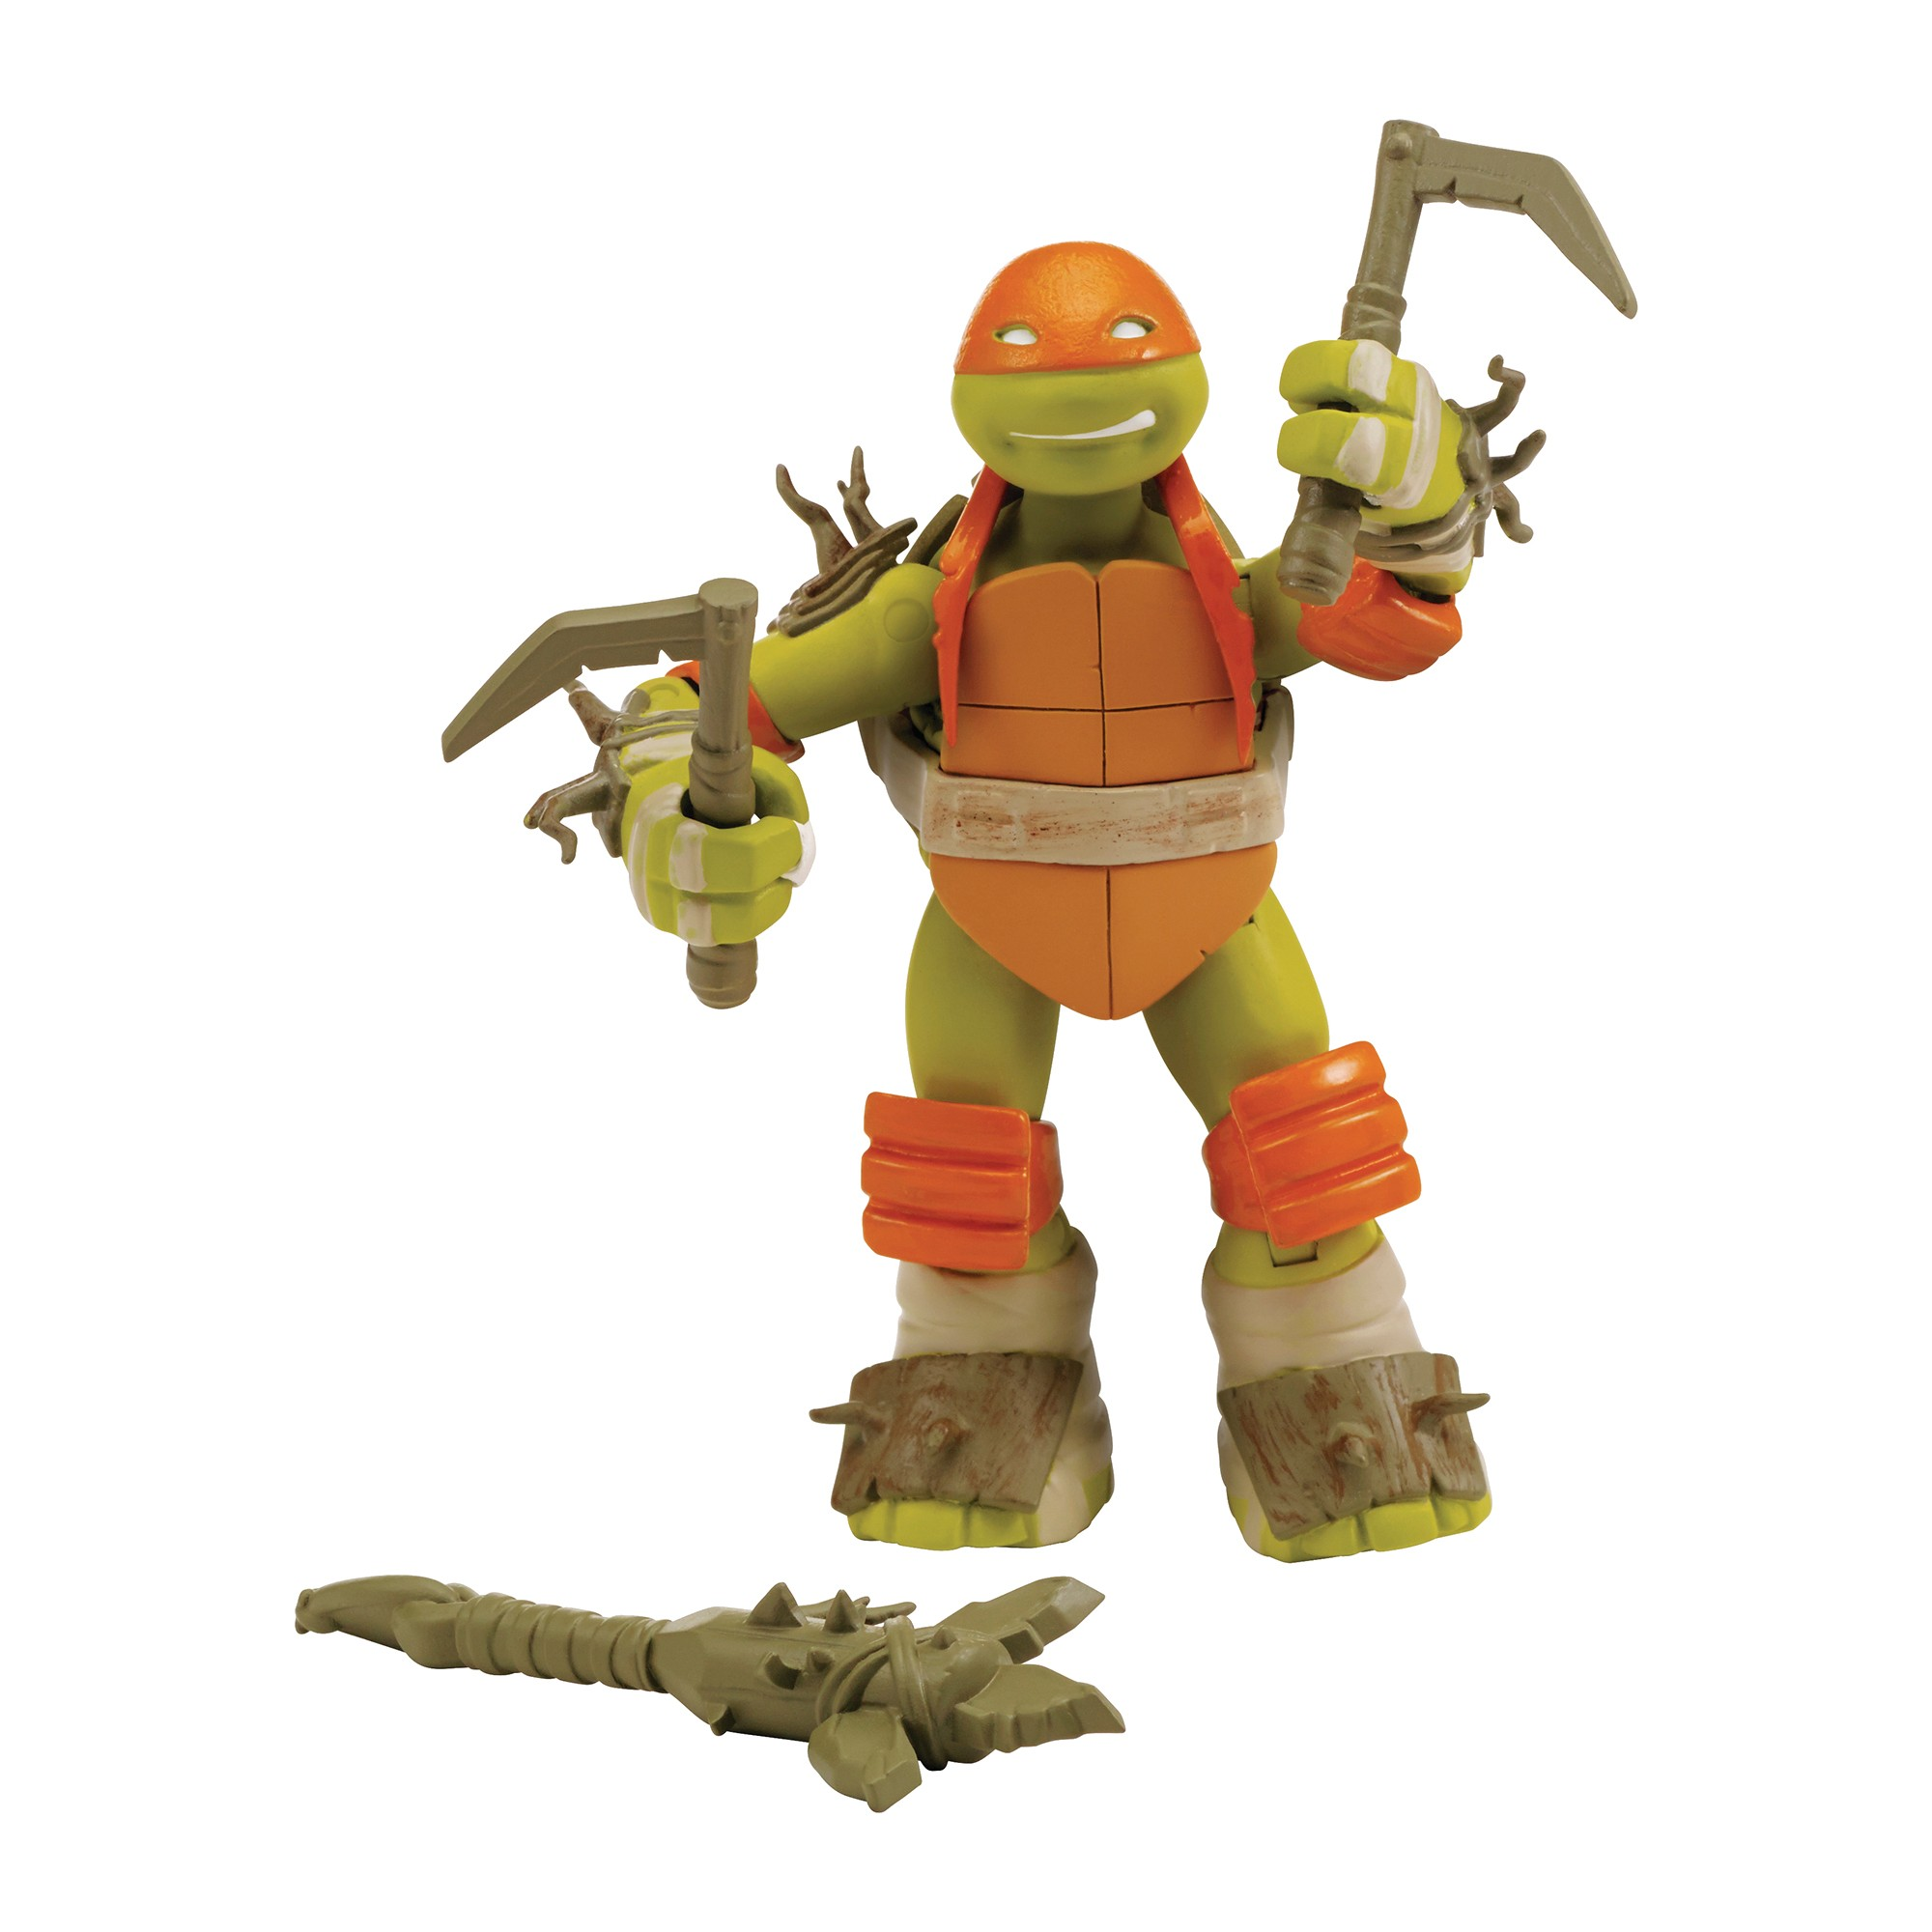 Toys Games Tmnt Out Of The Shadows Splinter Movie2 Teenage Mutant Ninja Turtles Figure Gift Toys Games Action Figures